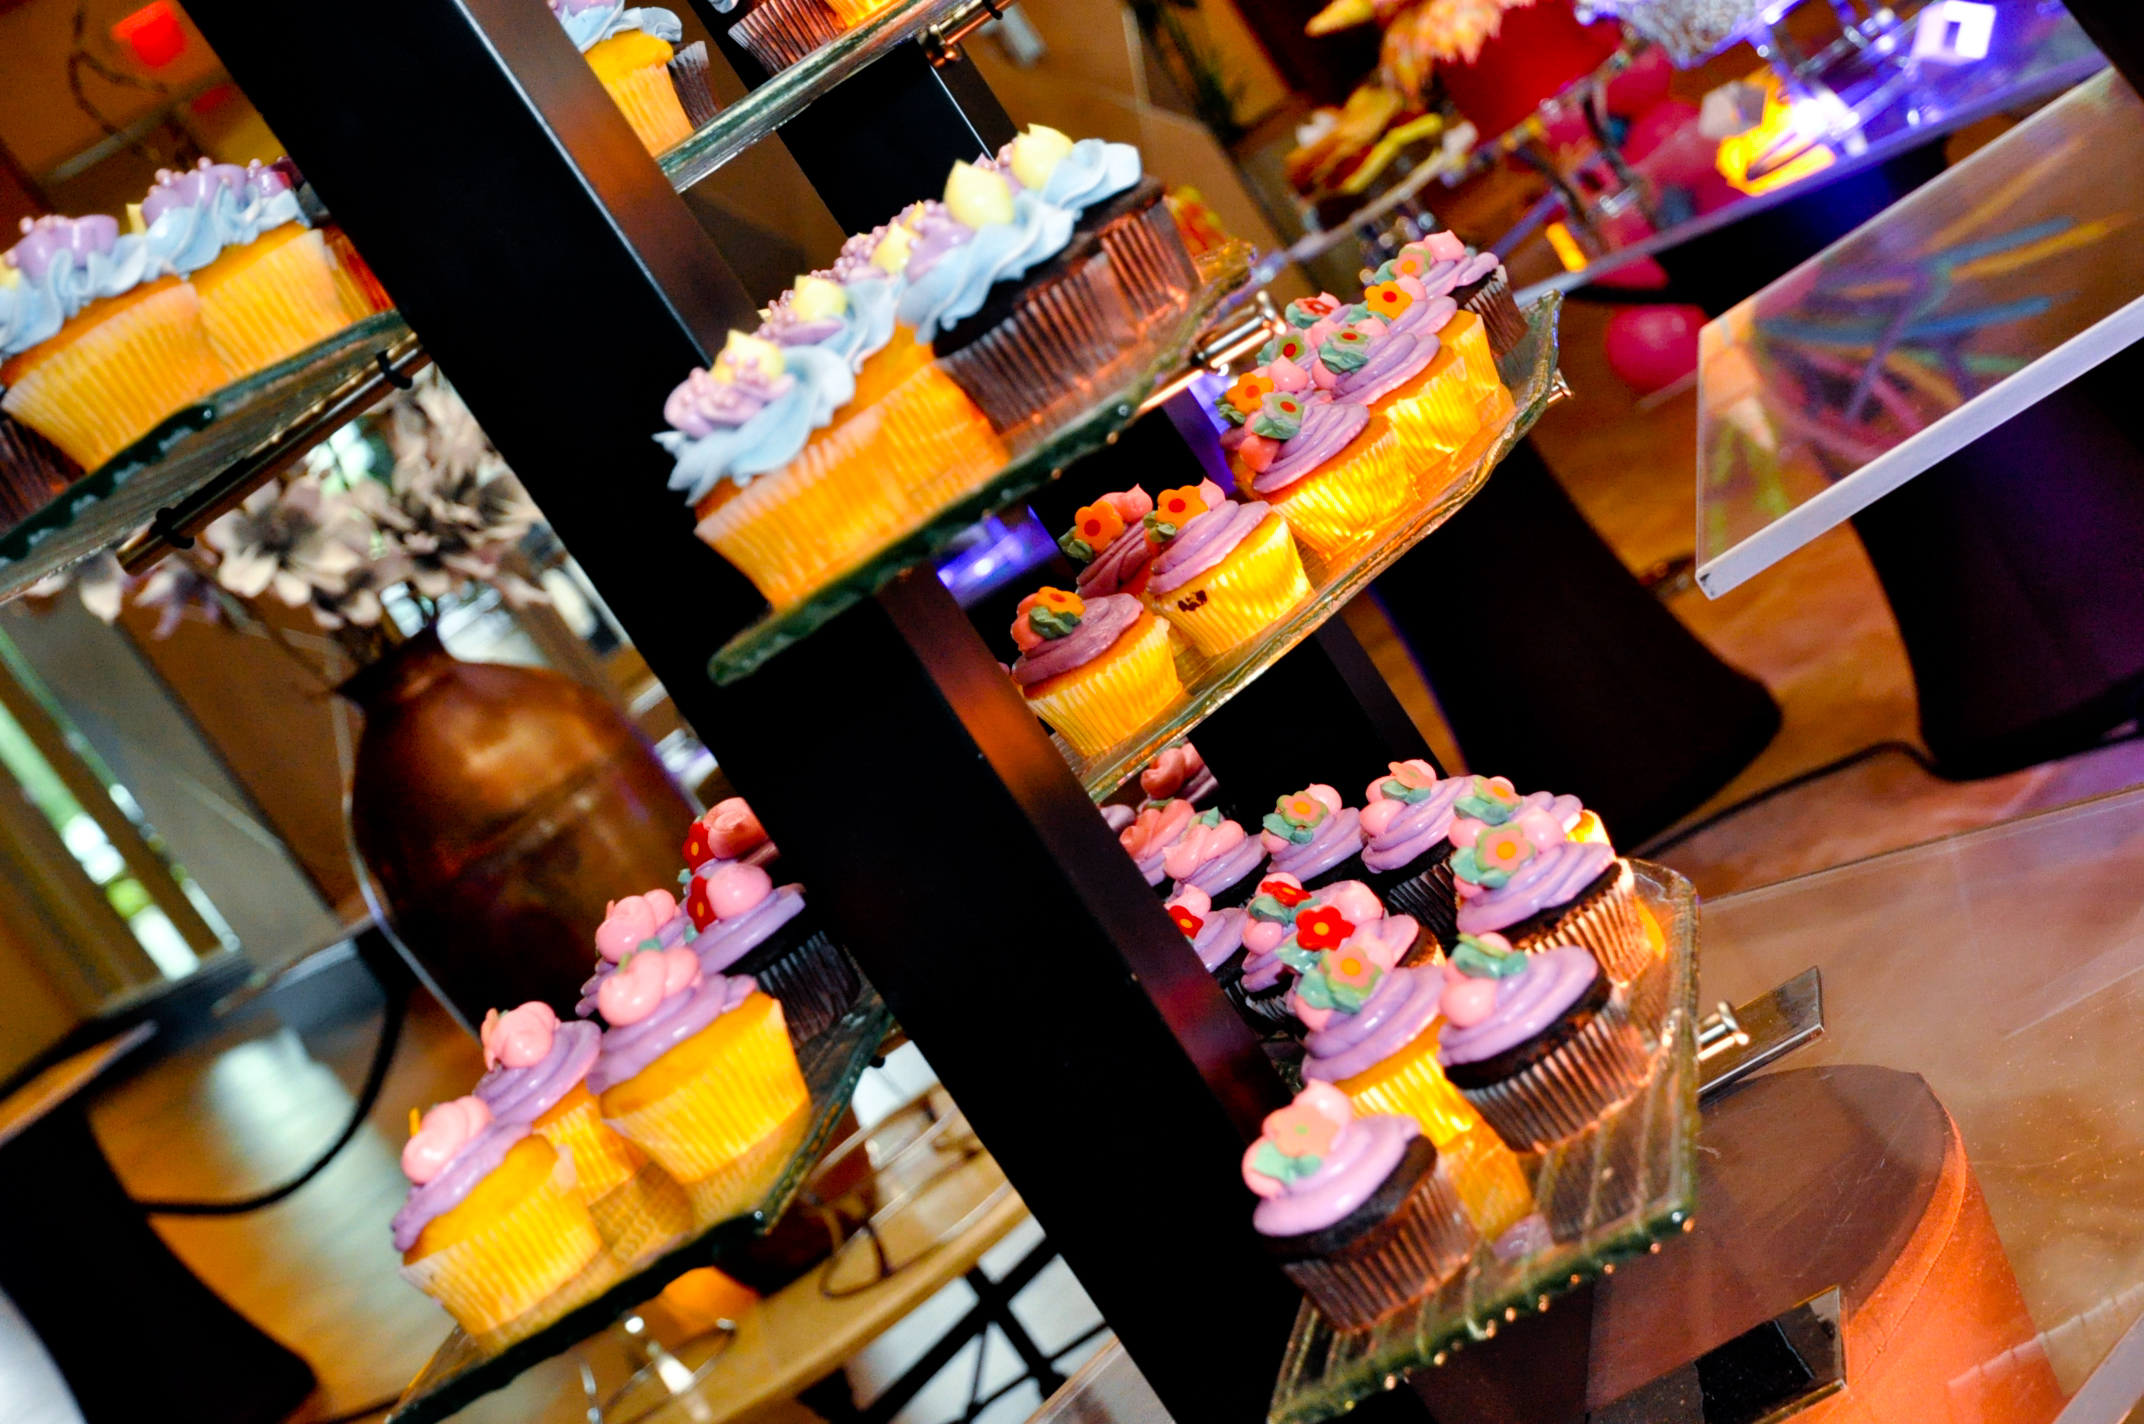 Cupcake Lovers Weekend June 14 & 15, 2013, at Hilton Orlando Bonnet Creek, Central Florida